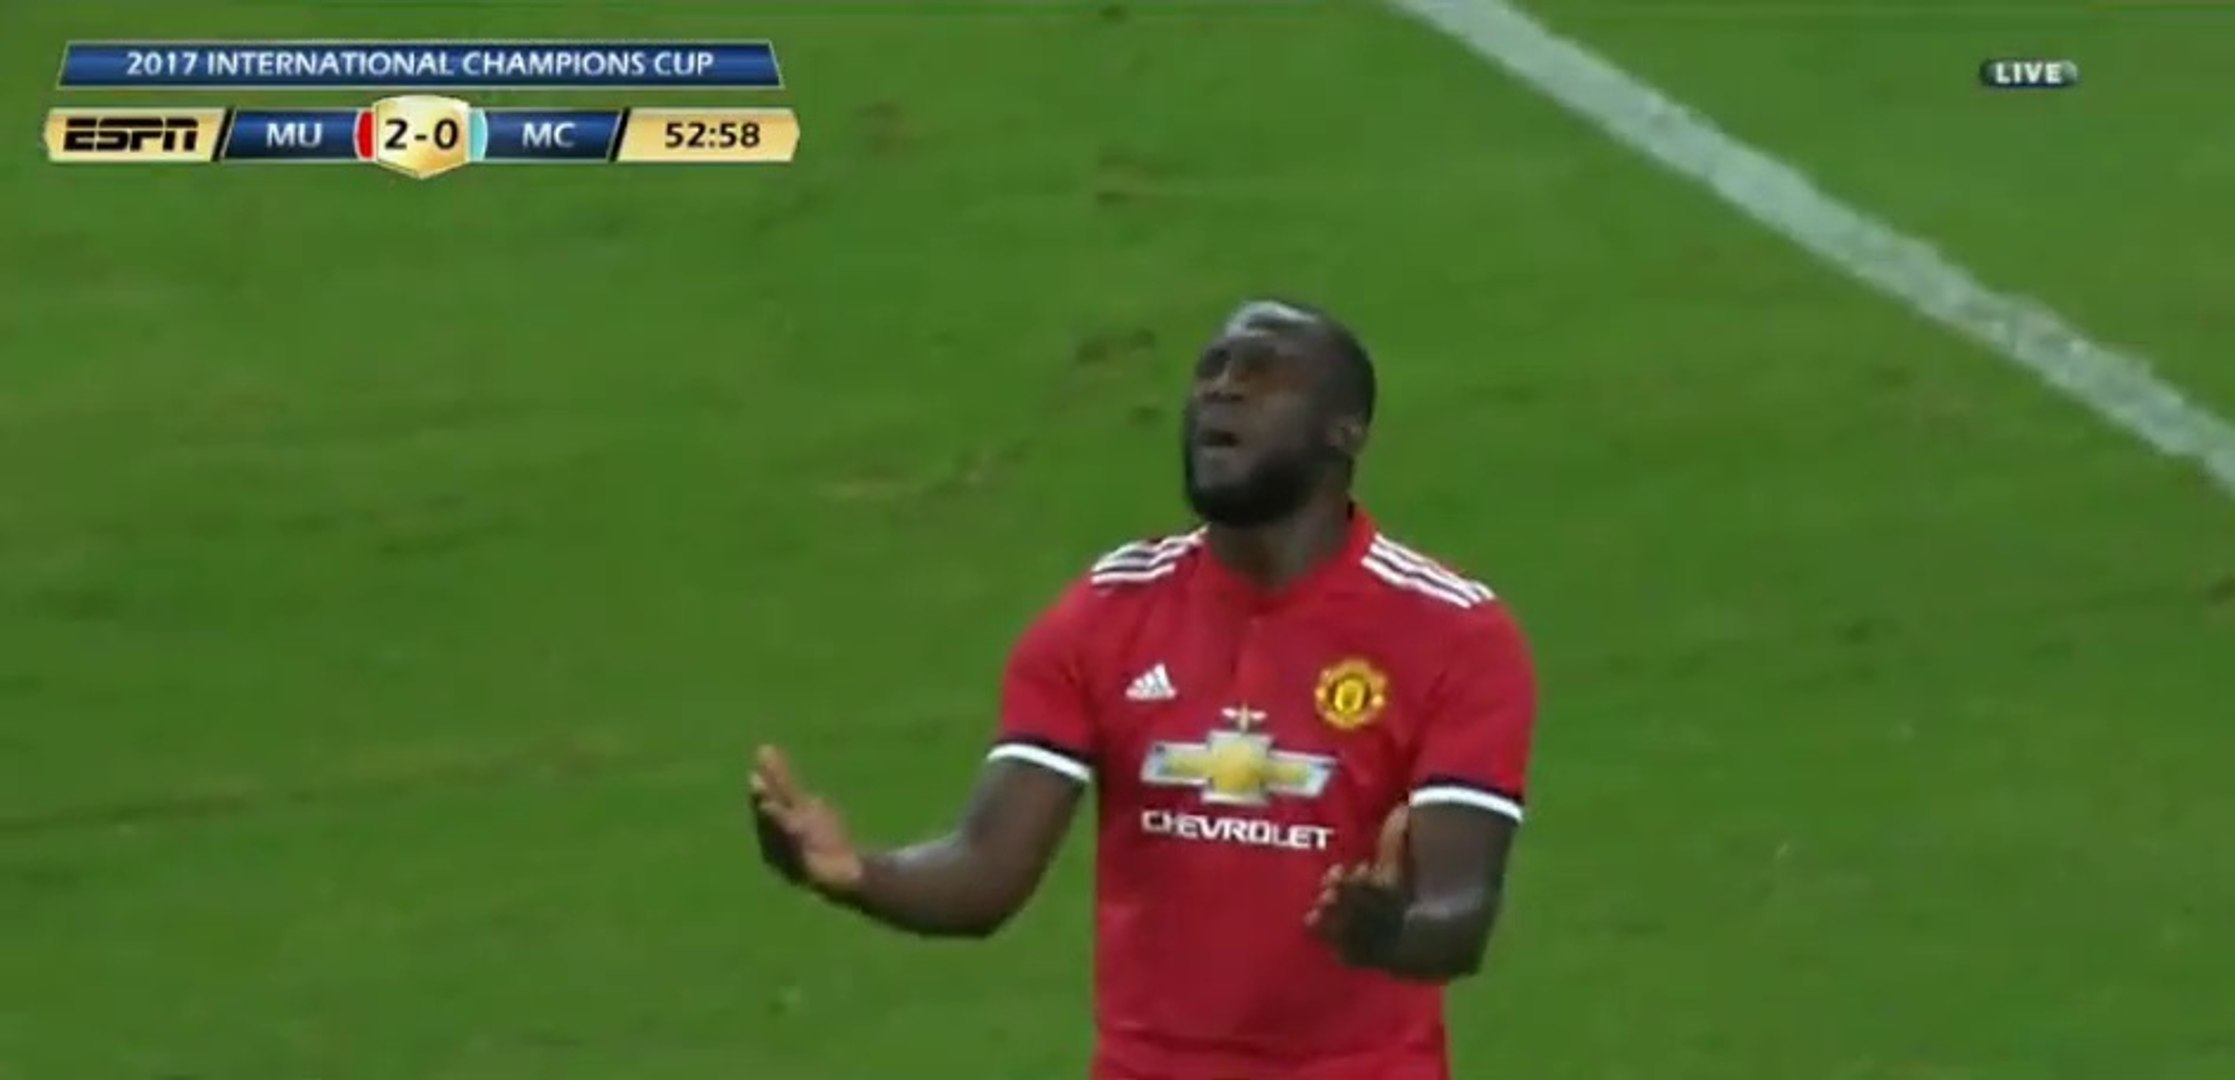 Romelu Lukaku Super Strike Hits Cross-Bar HD - Manchester United 2-0 Manchester City 21.07.2017